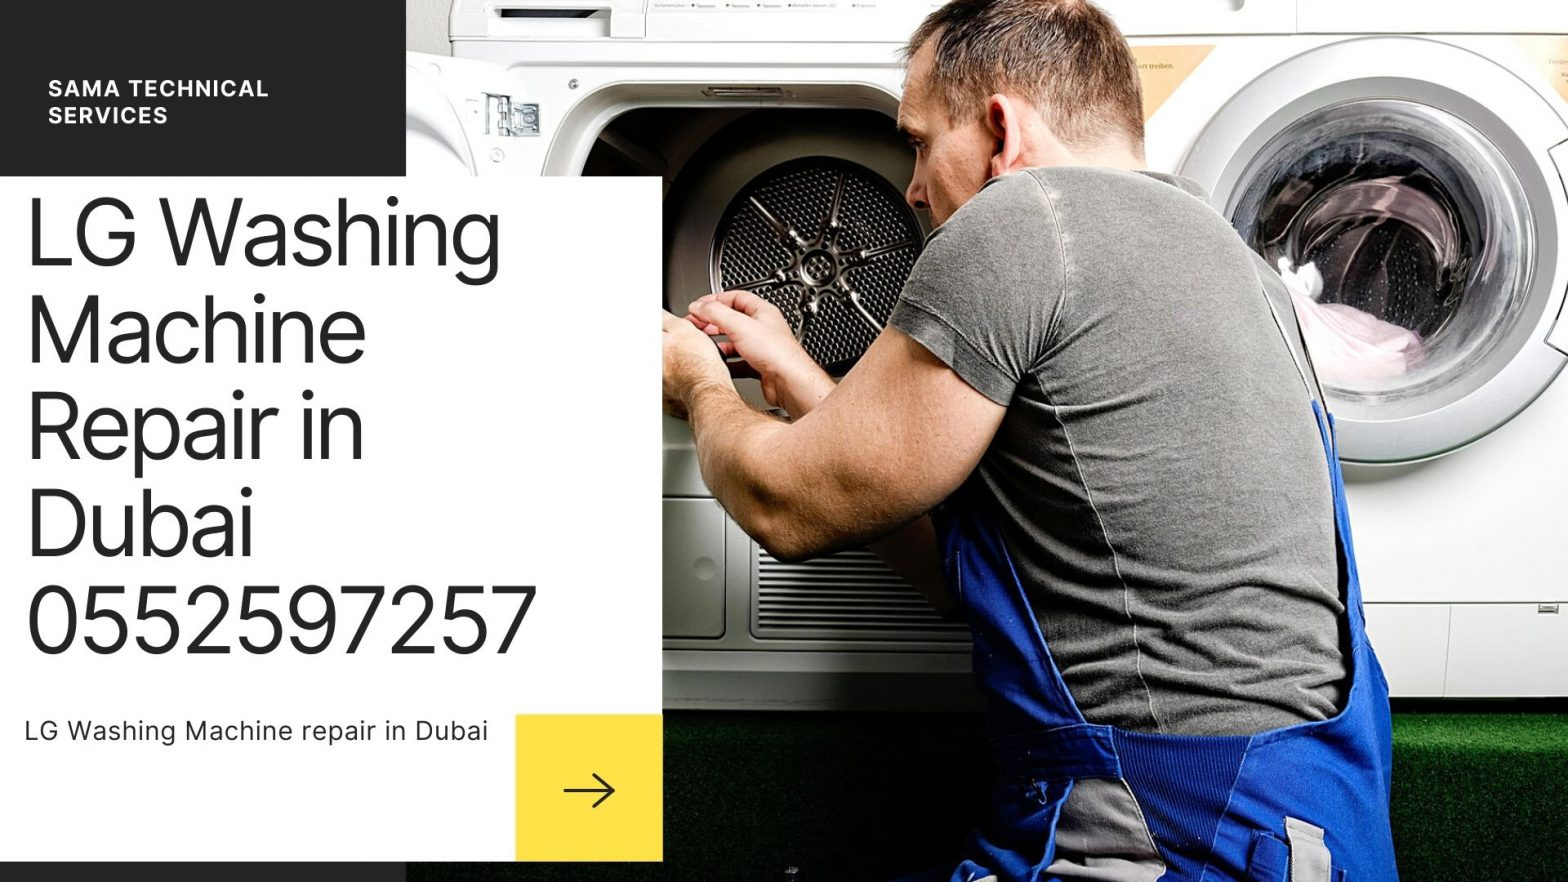 LG Washing machine repair in Dubai